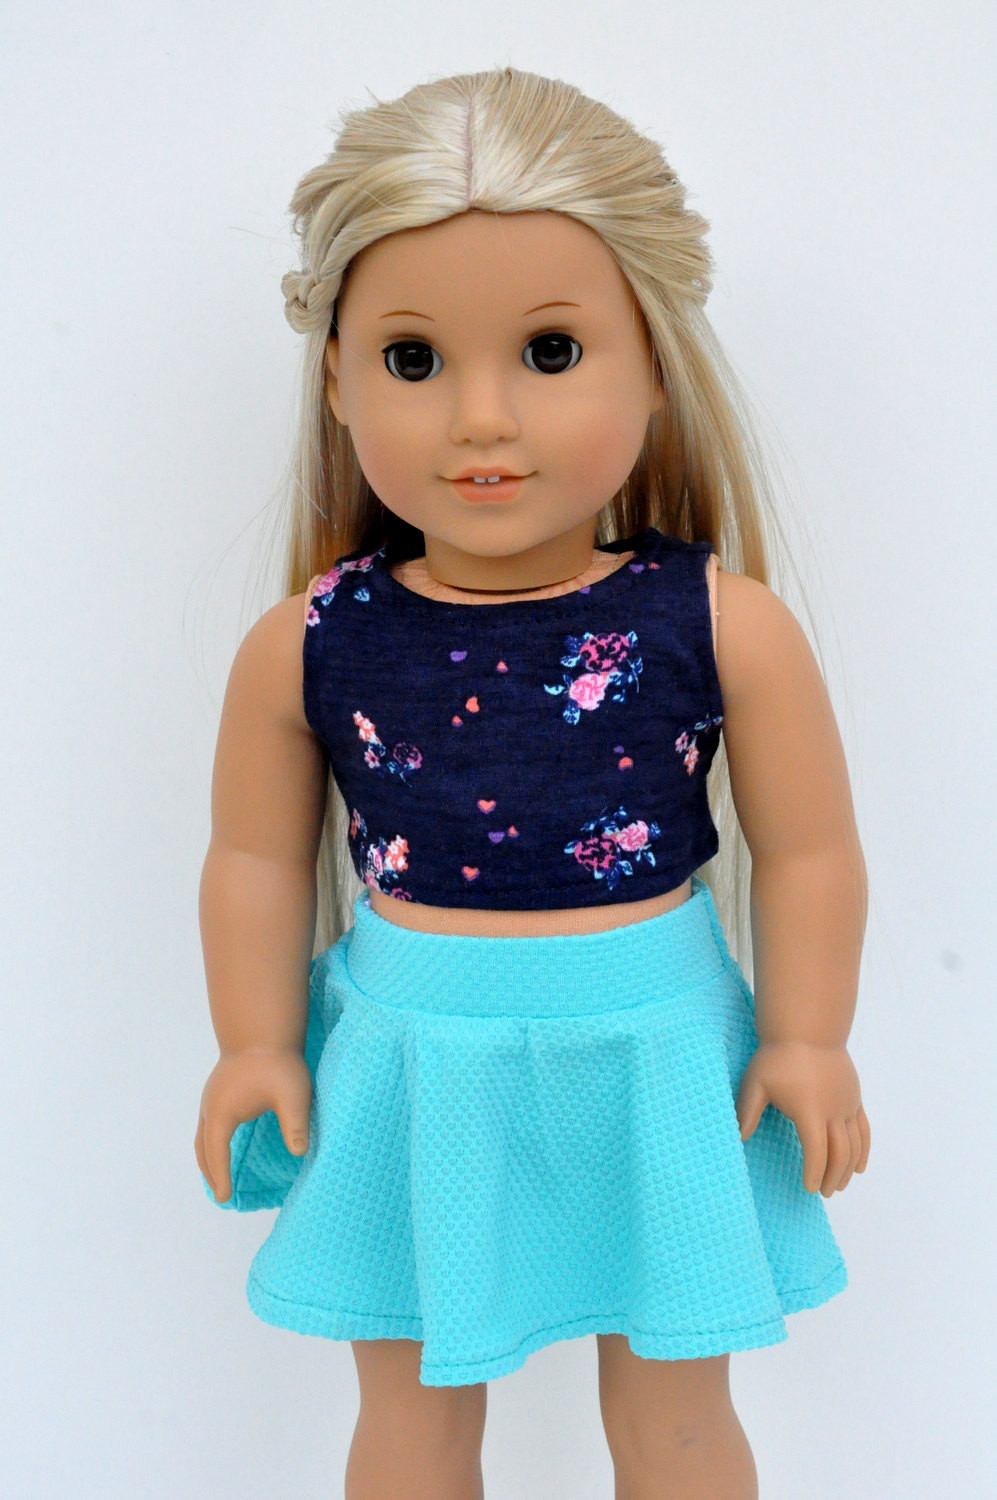 Inspirational Navy Floral Crop top with Turquoise Skater Skirt 18 Inch Doll American Girl Doll Skirts Of Incredible 50 Ideas American Girl Doll Skirts